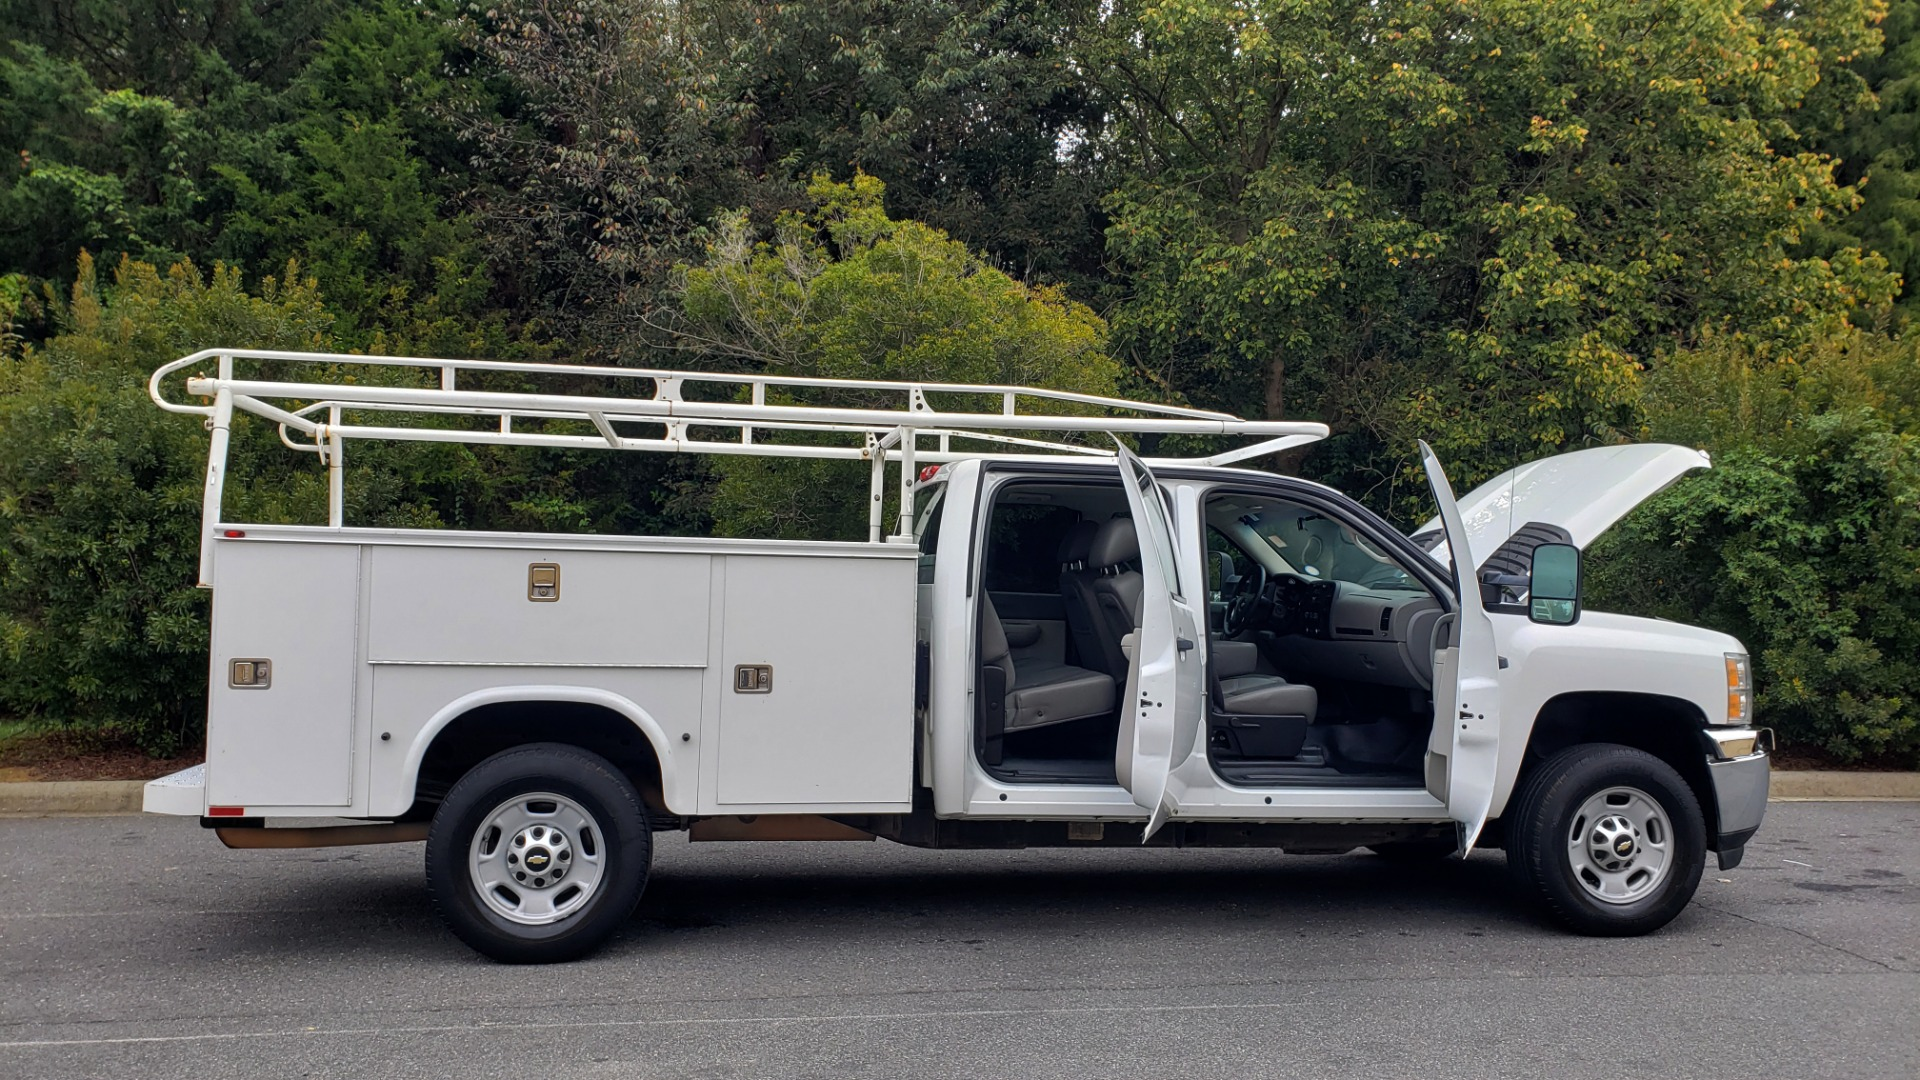 Used 2013 Chevrolet SILVERADO 2500HD WORK TRUCK 4WD / 6.0L V8 / AUTO / TOOL BOX / CLEAN for sale Sold at Formula Imports in Charlotte NC 28227 12